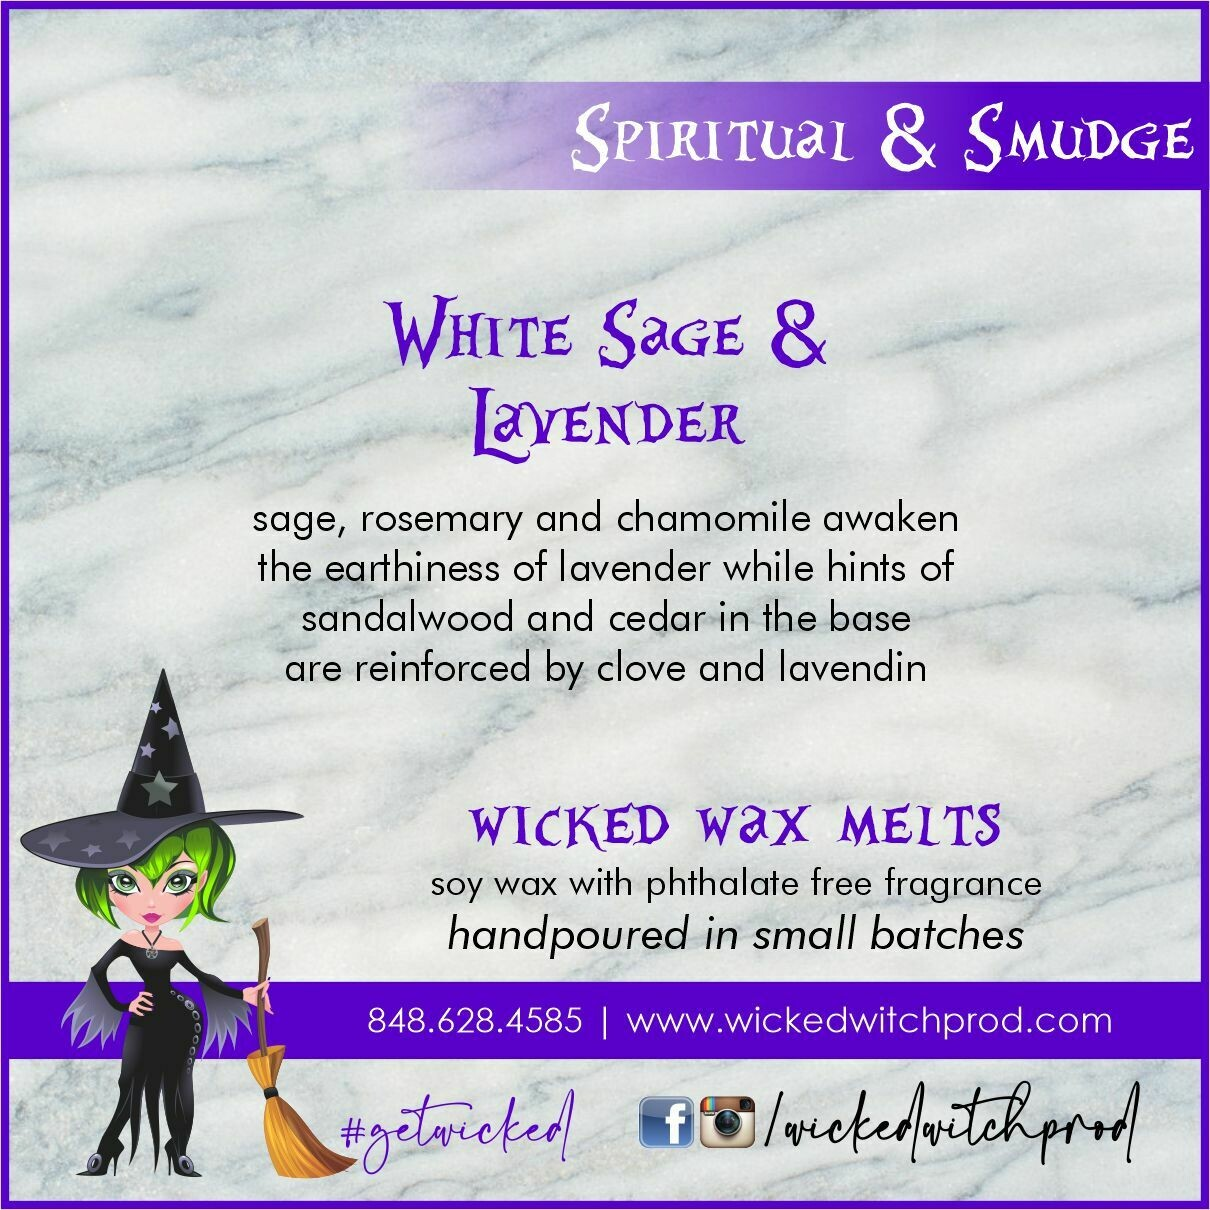 White Sage & Lavender Wicked Wax Melts